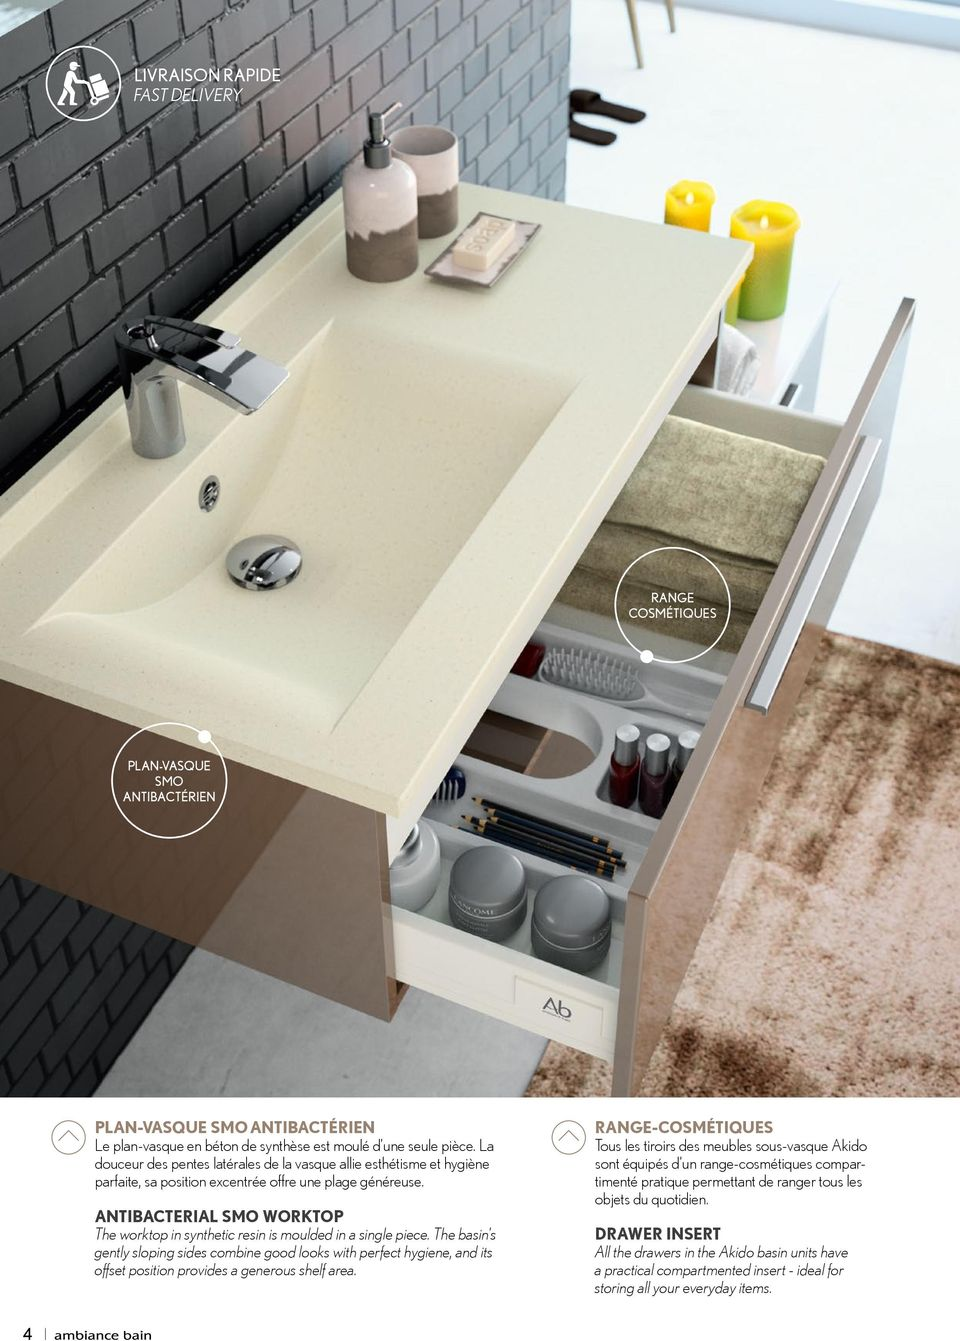 antibacterial worktop The worktop in synthetic resin is moulded in a single piece.